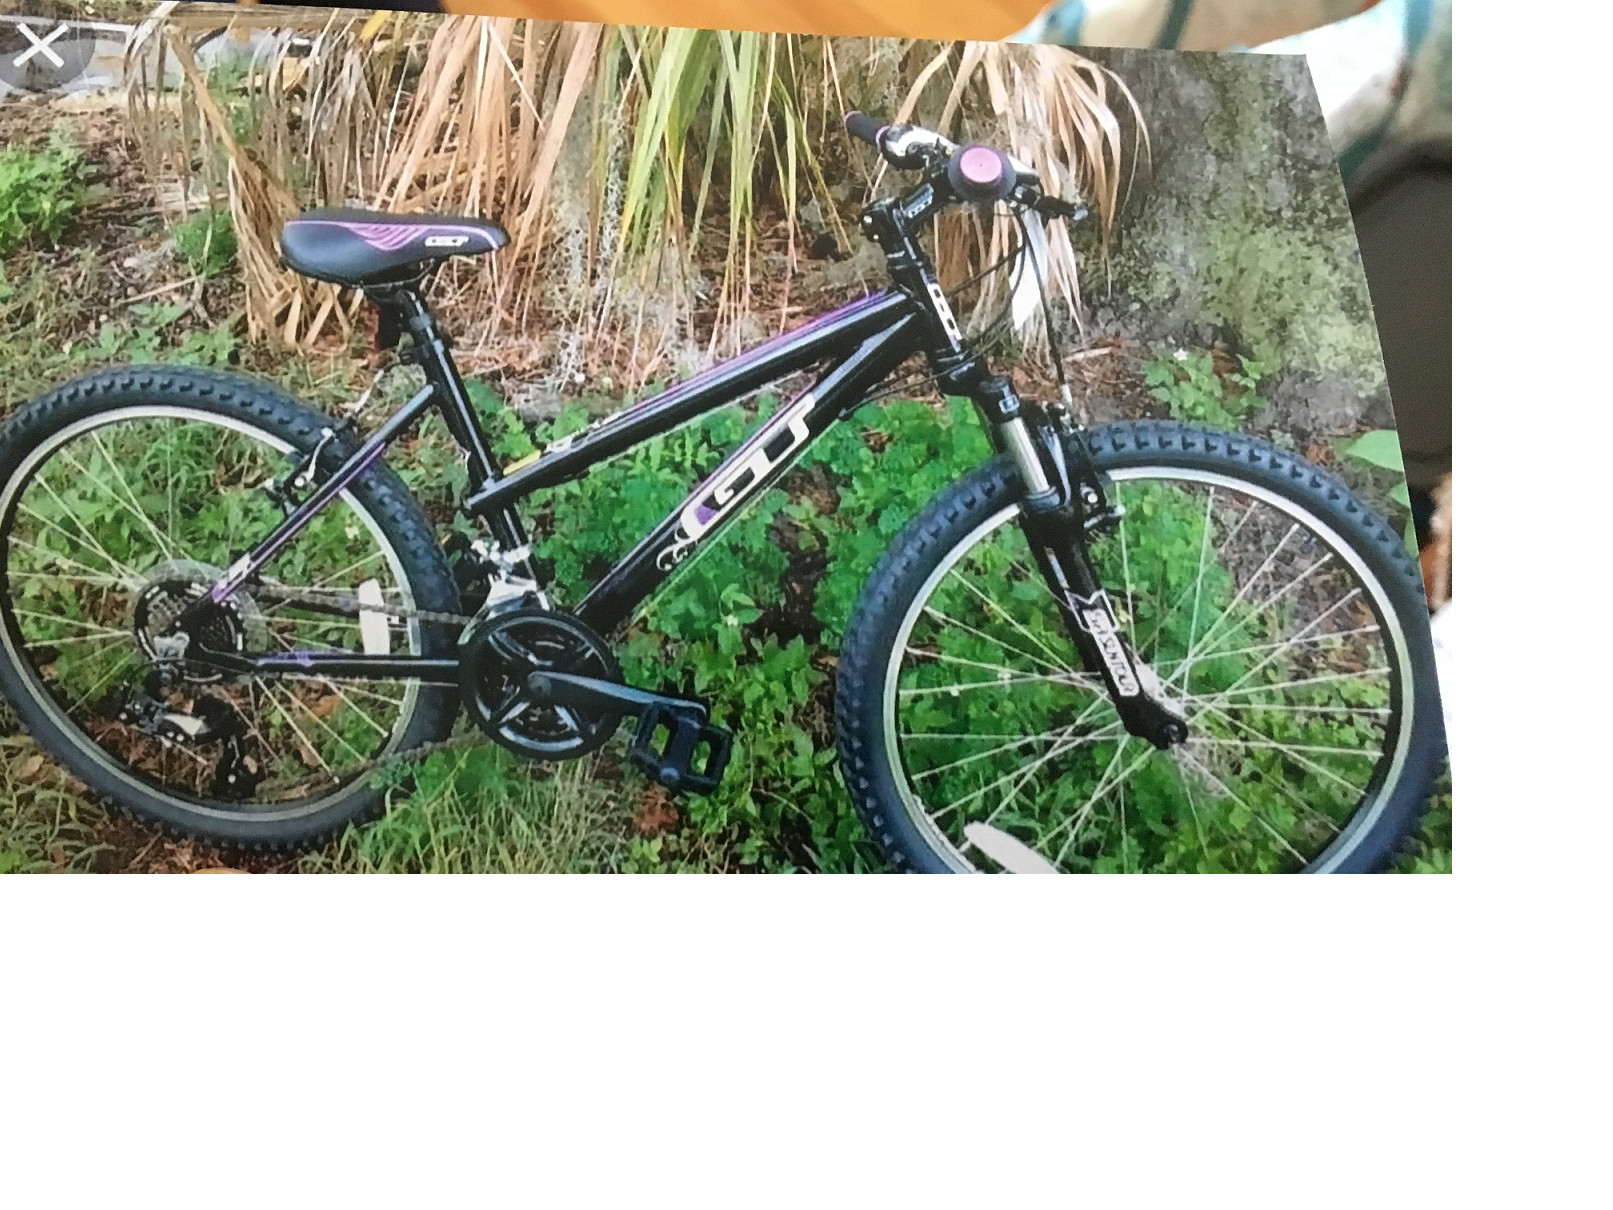 Police ask for help following bike theft